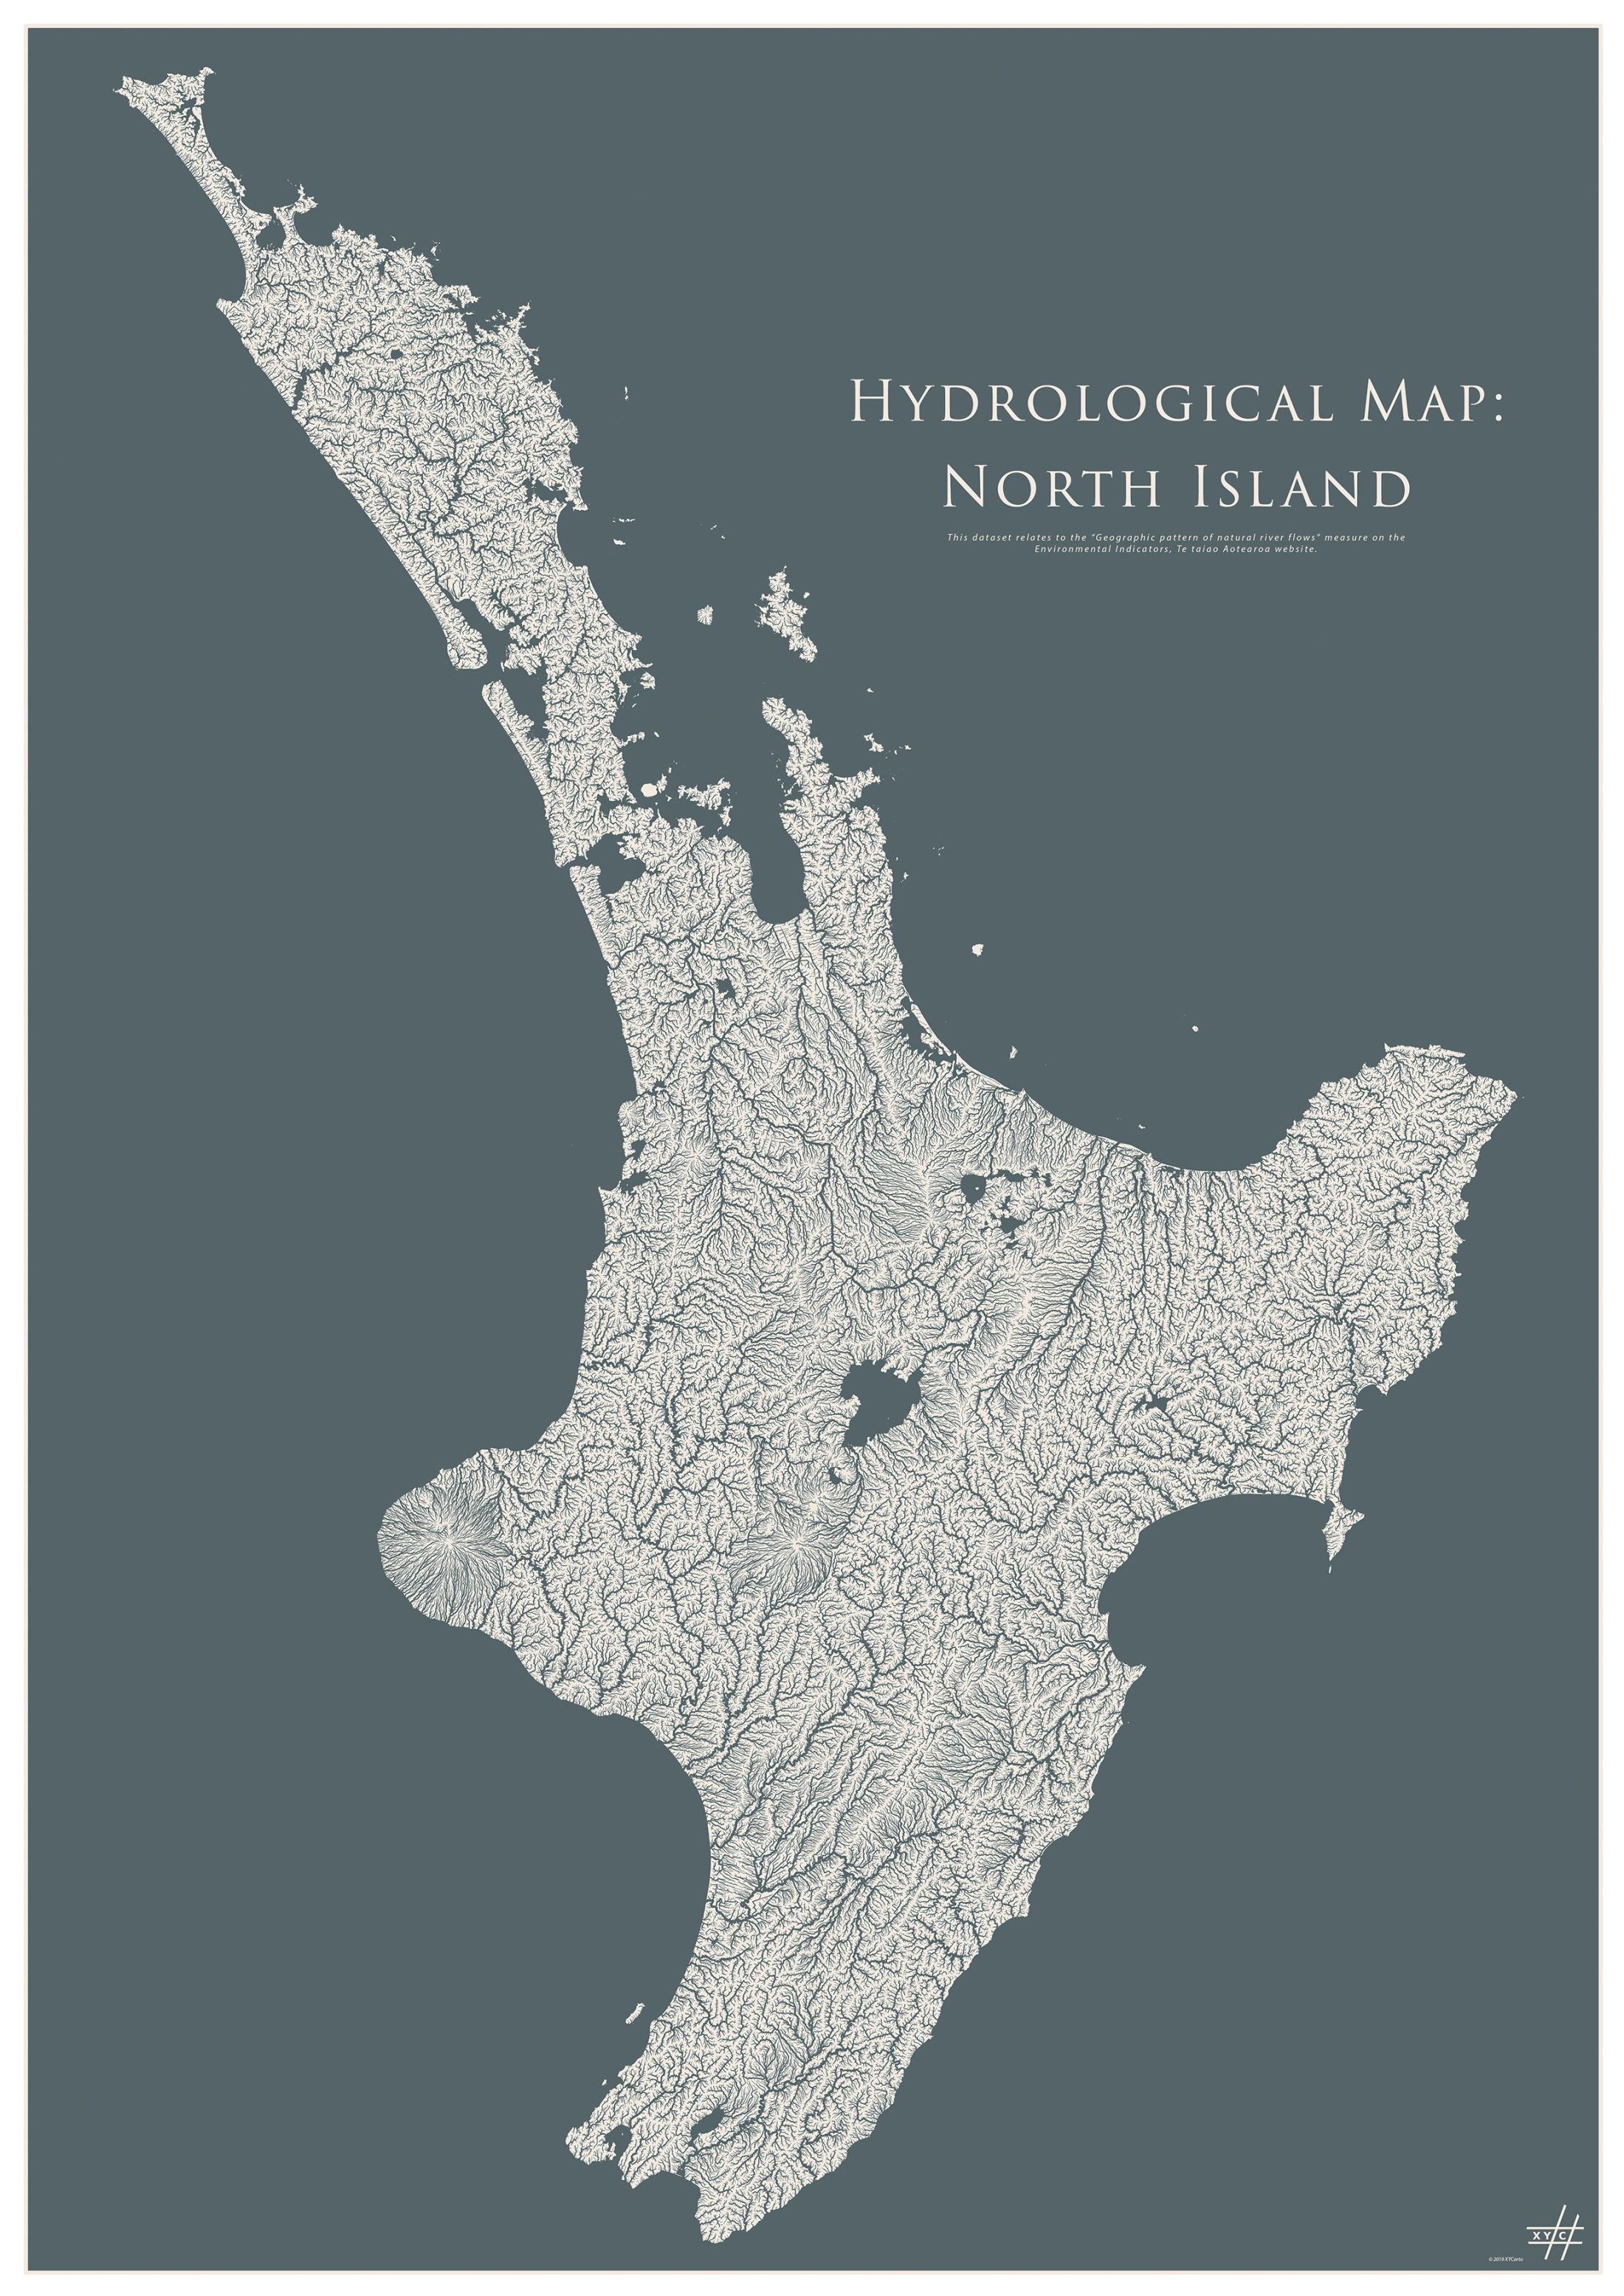 cartography_north_island_hydrology